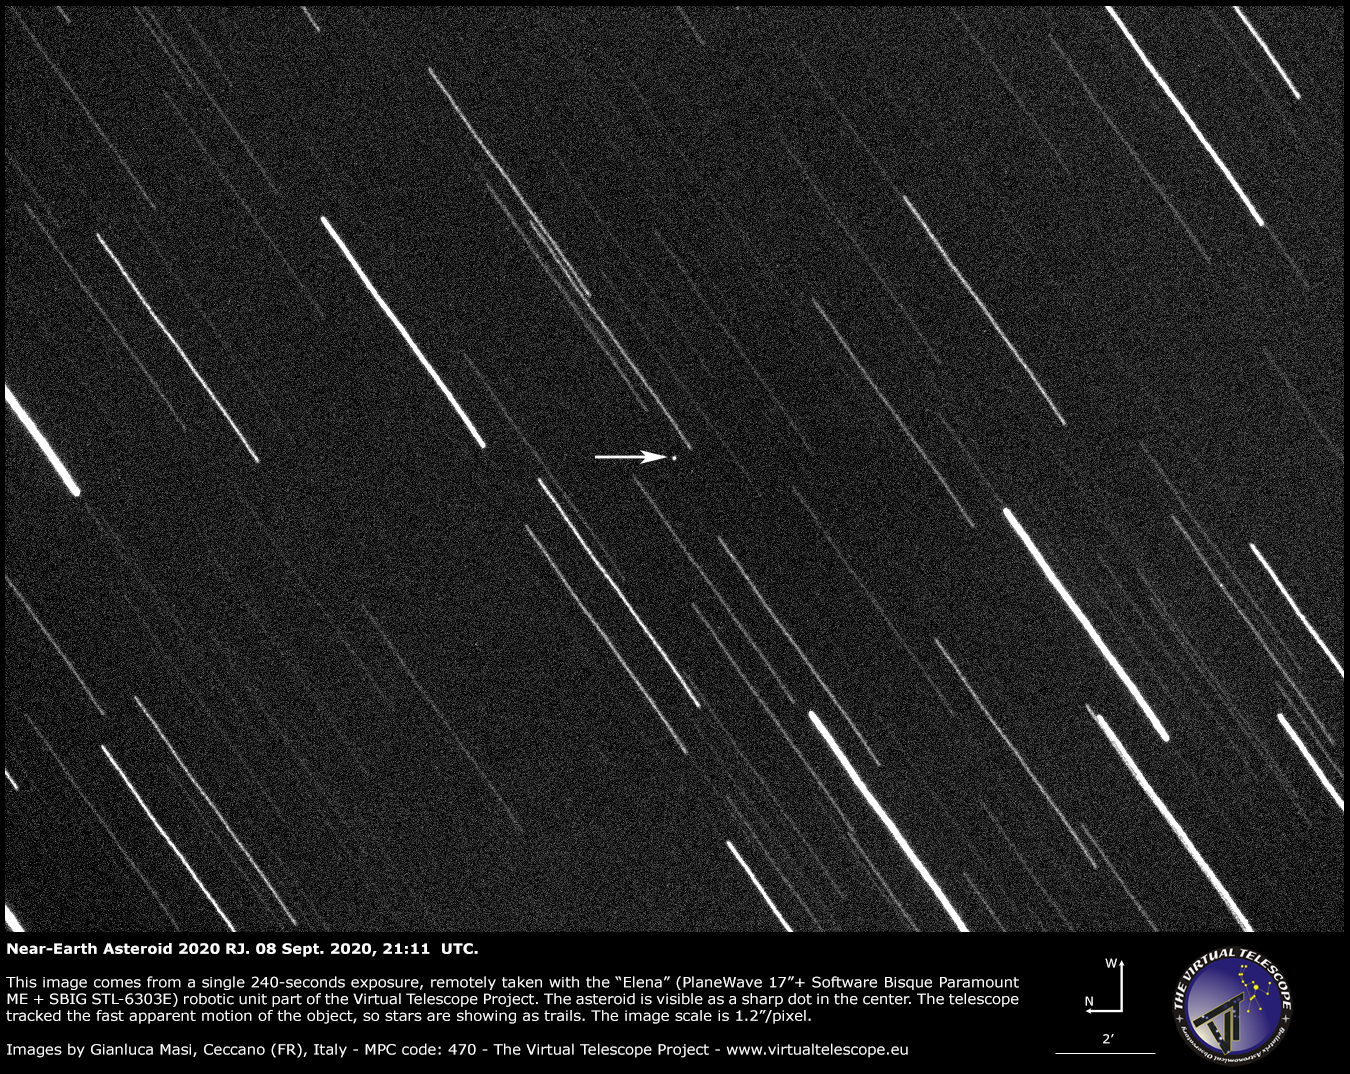 Near-Earth Asteroid 2020 RJ. 8 Sept. 2020.